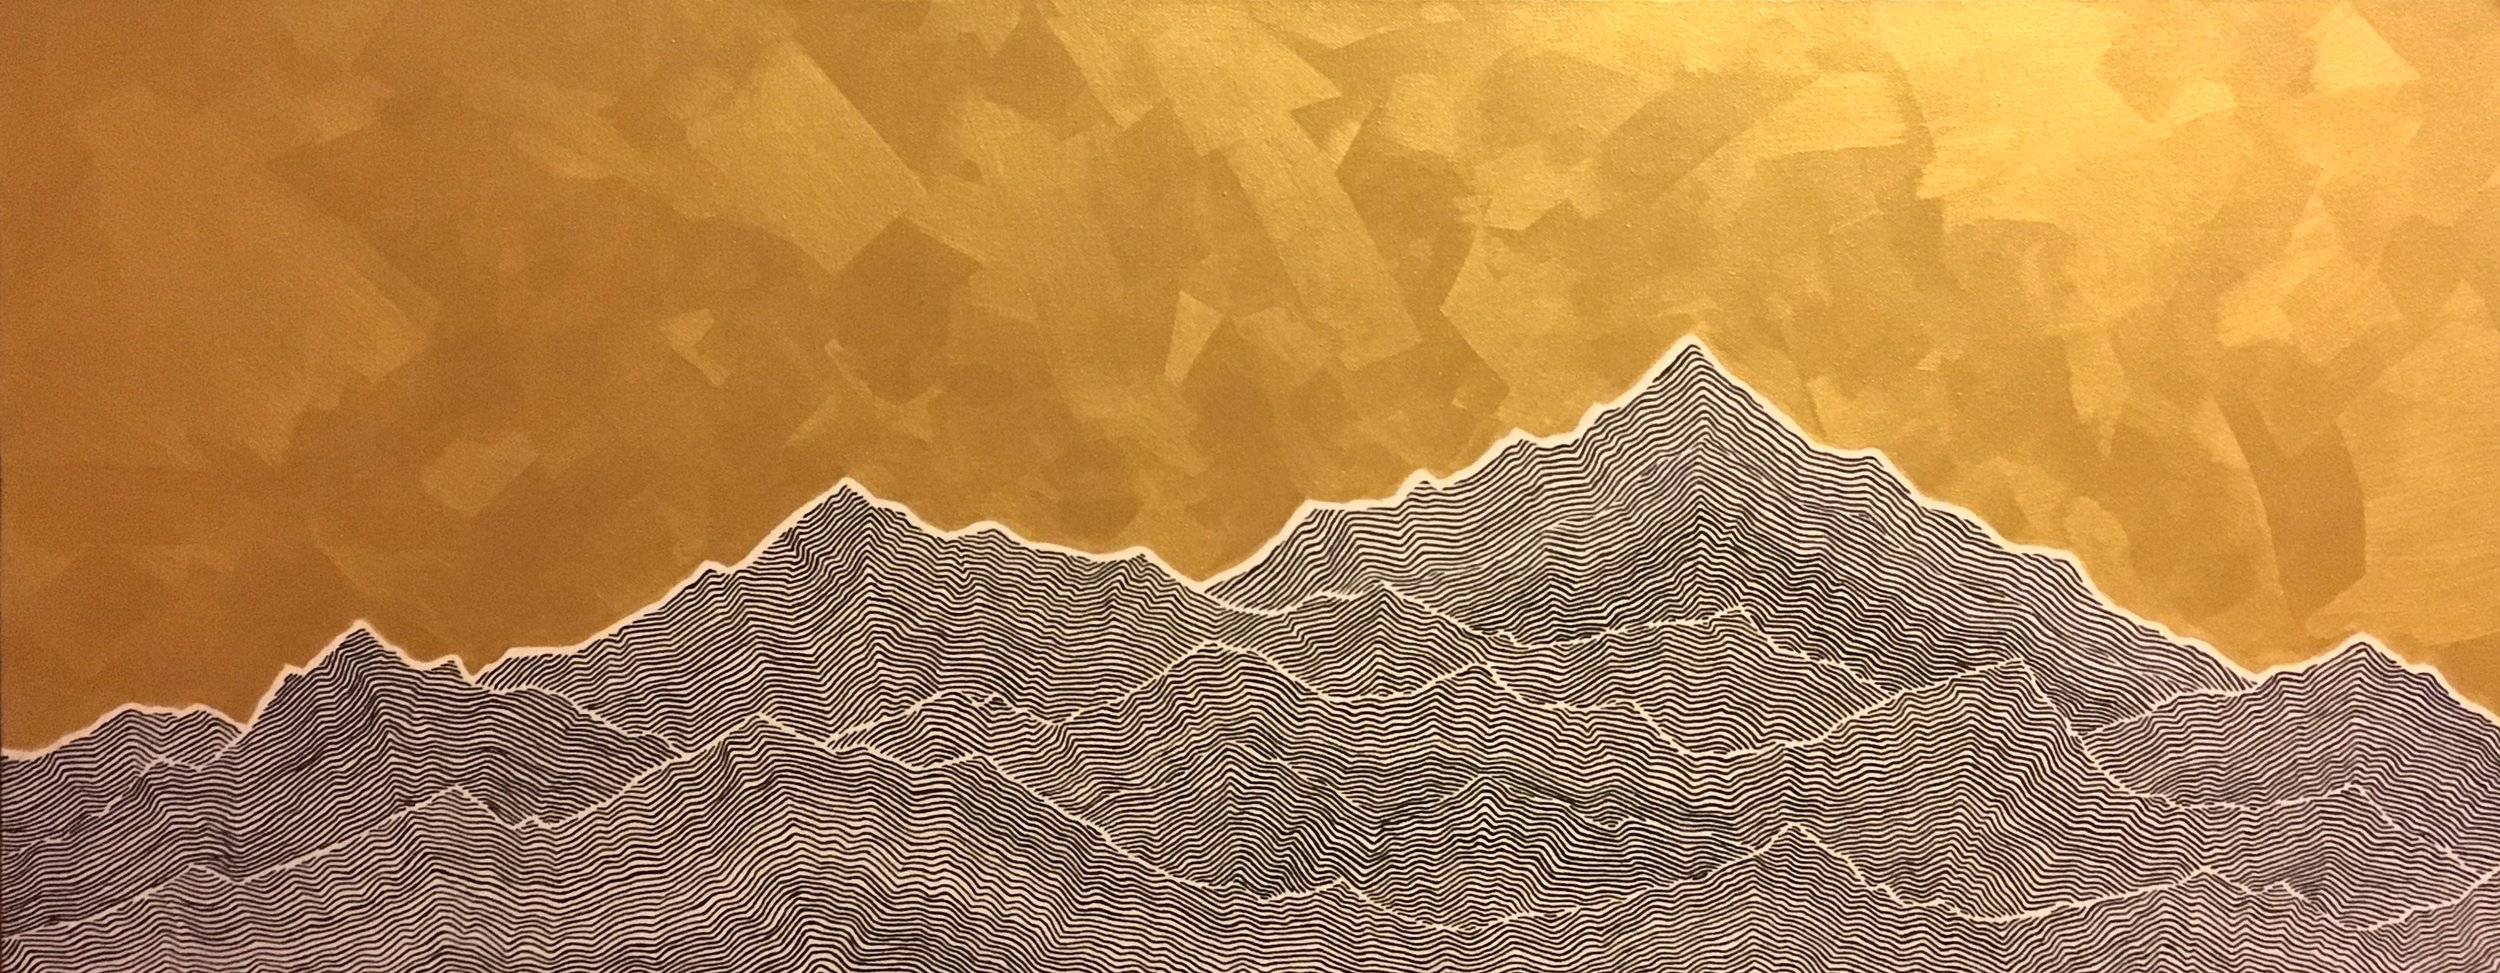 "Mountains III Ink and latex on canvas 40"" x 16"" $750"